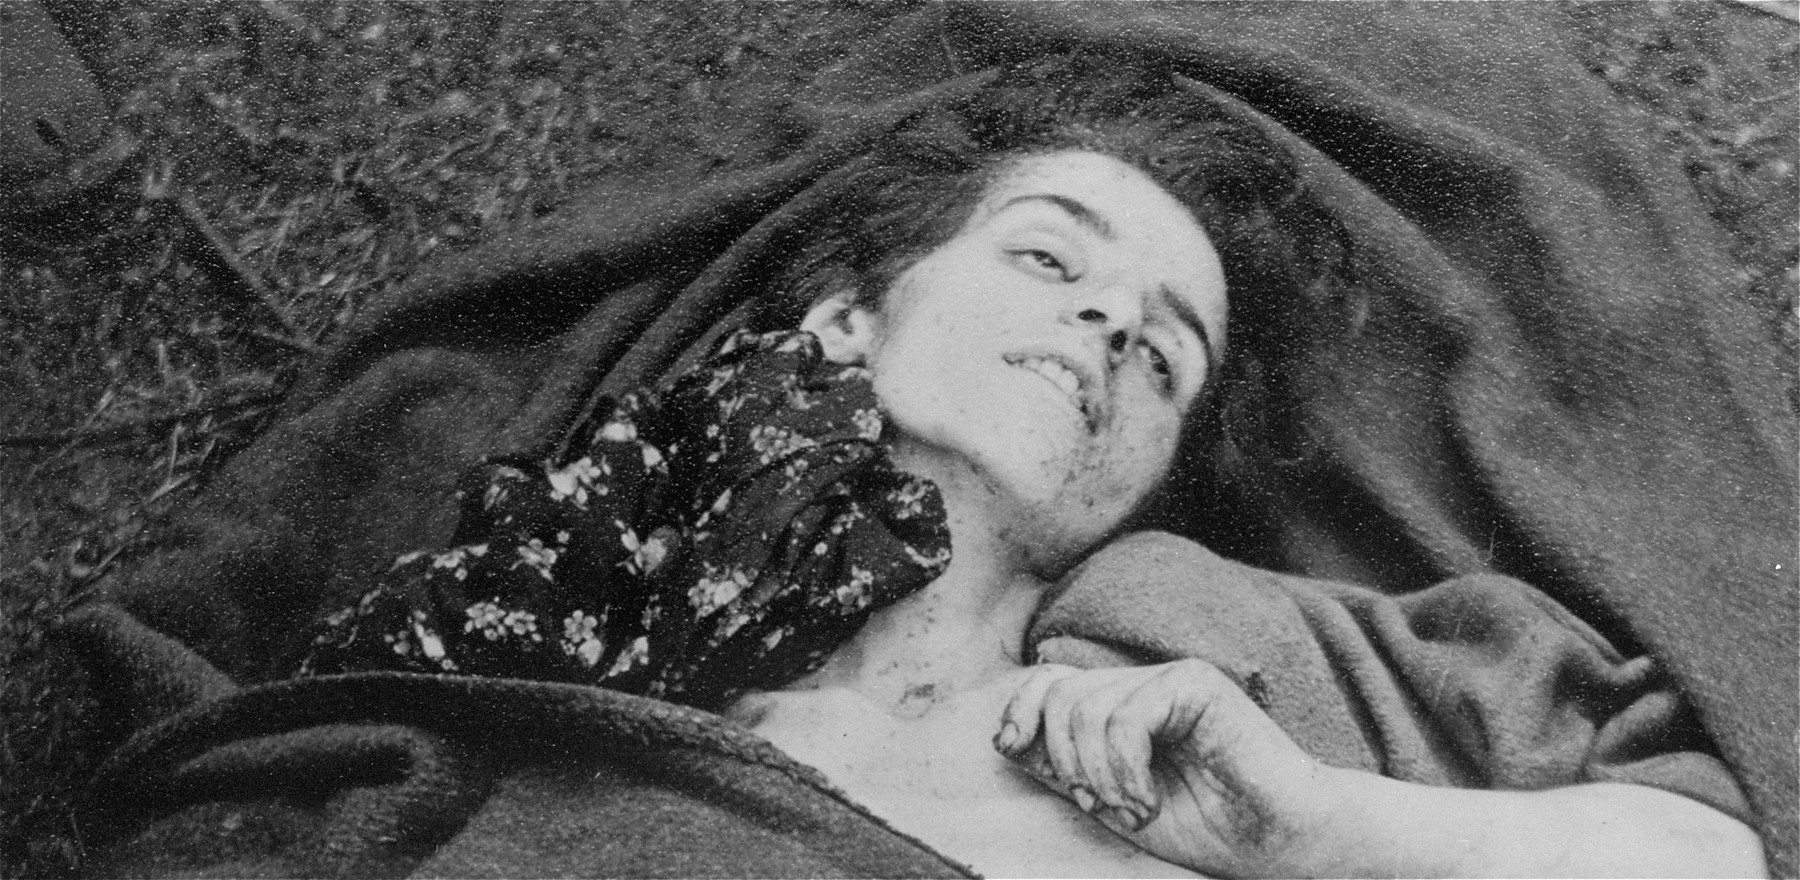 The corpse of a woman who perished in Bergen-Belsen.